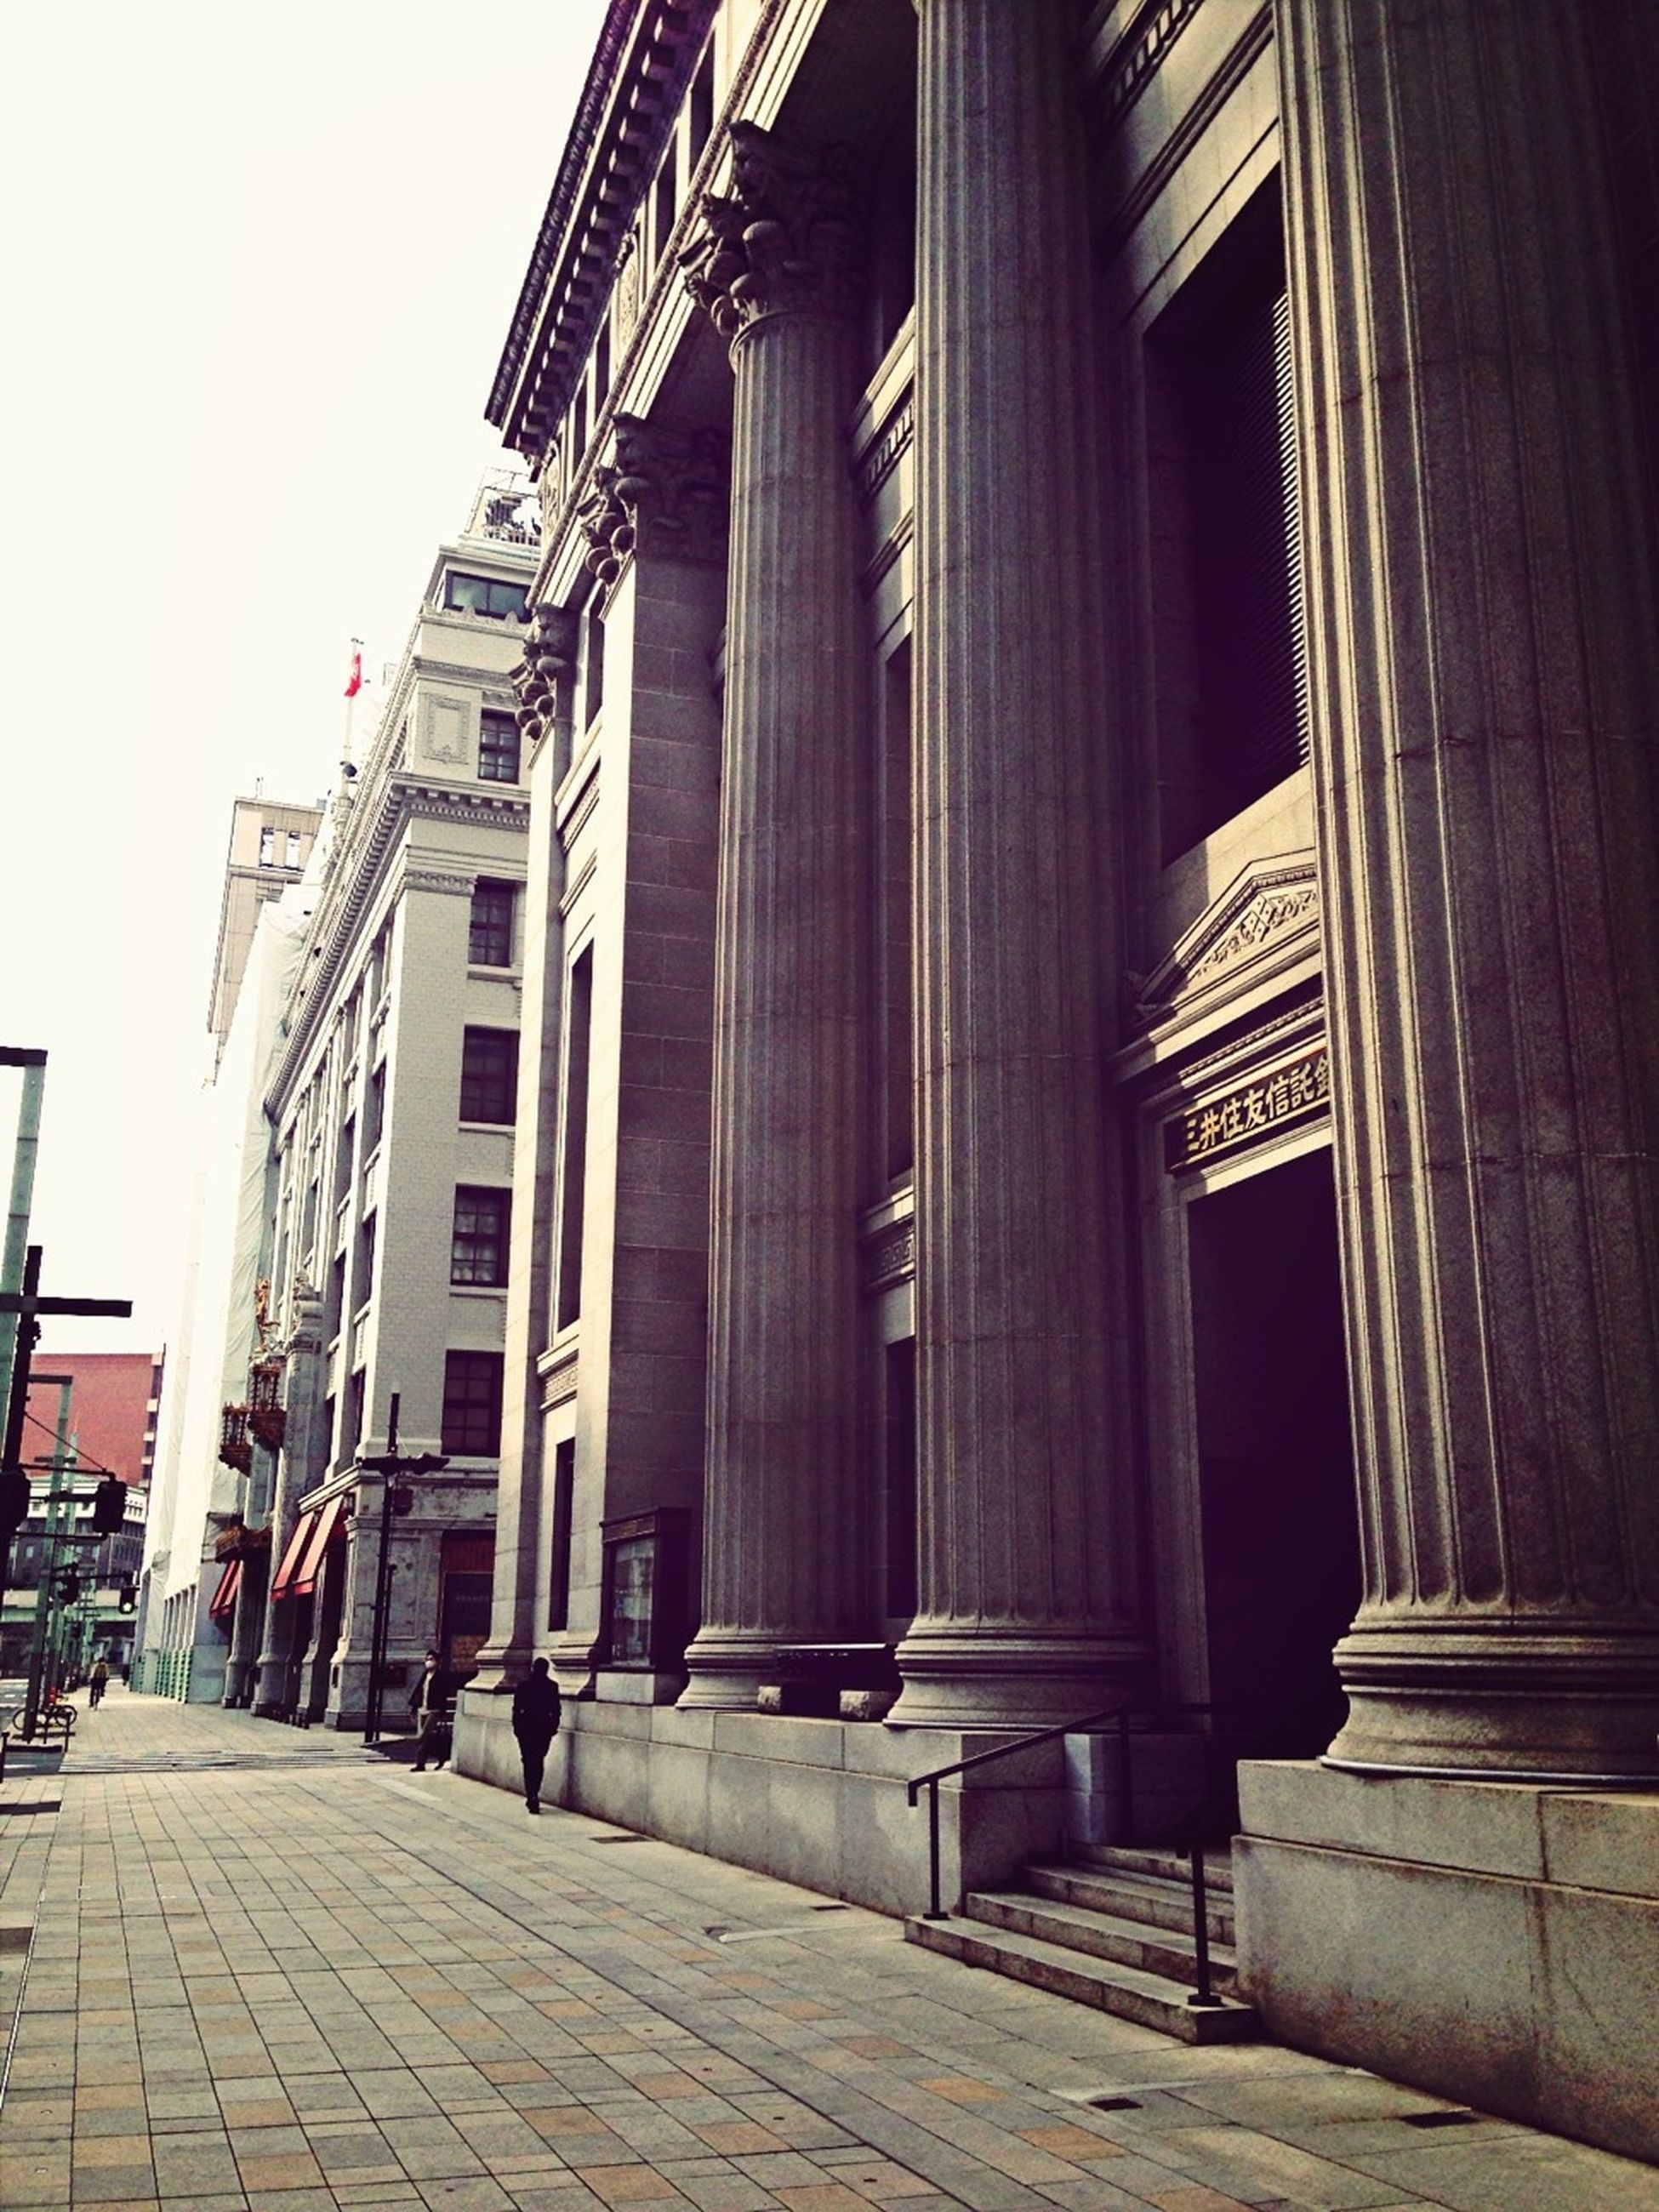 architecture, building exterior, built structure, the way forward, street, city, cobblestone, building, sky, facade, low angle view, outdoors, sidewalk, sunlight, incidental people, street light, walkway, architectural column, day, clear sky